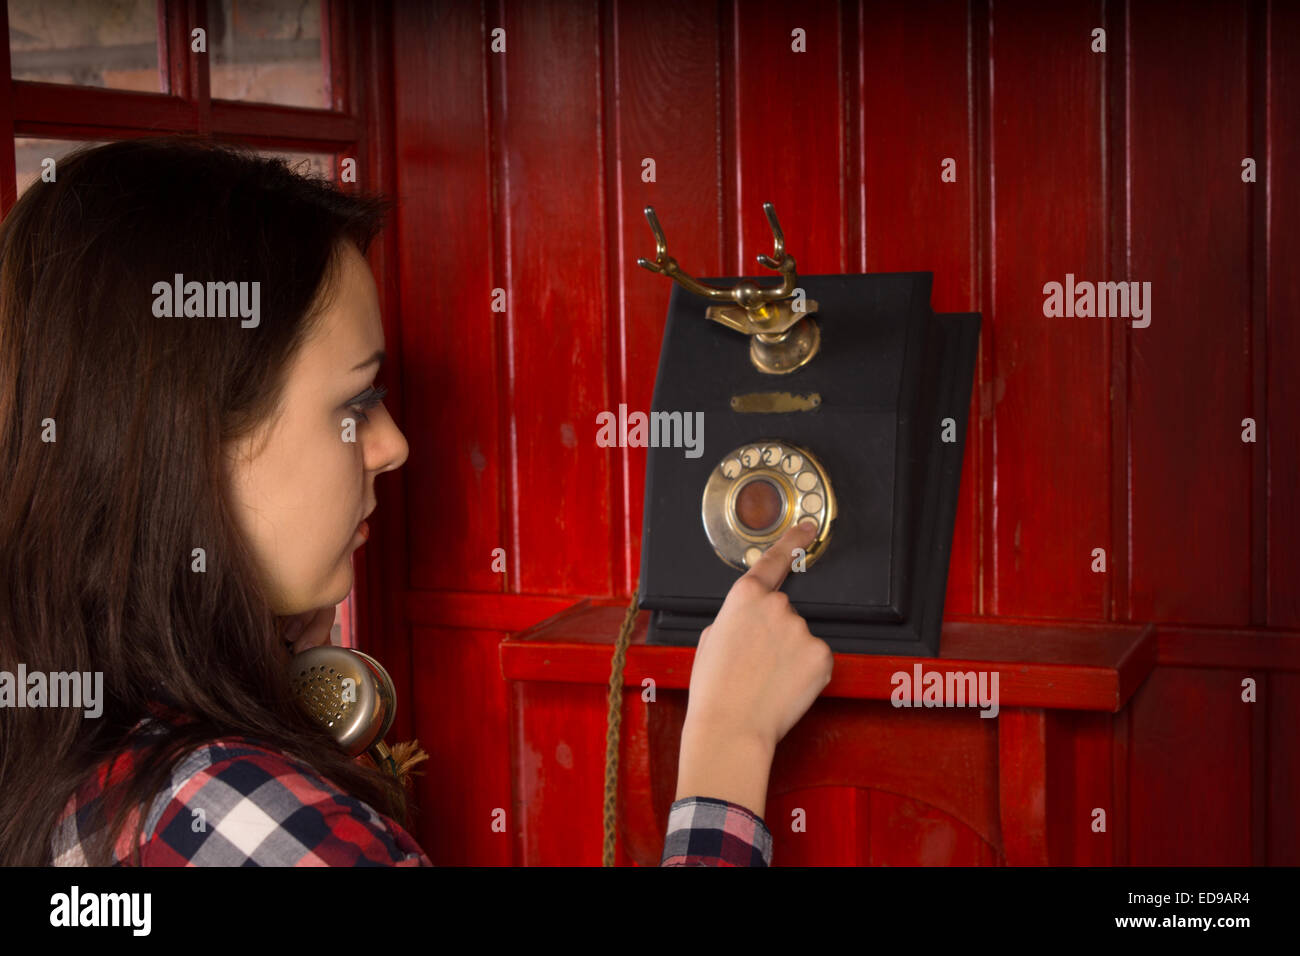 Woman dialing out on a vintage telephone instrument in a wooden red phone booth - Stock Image